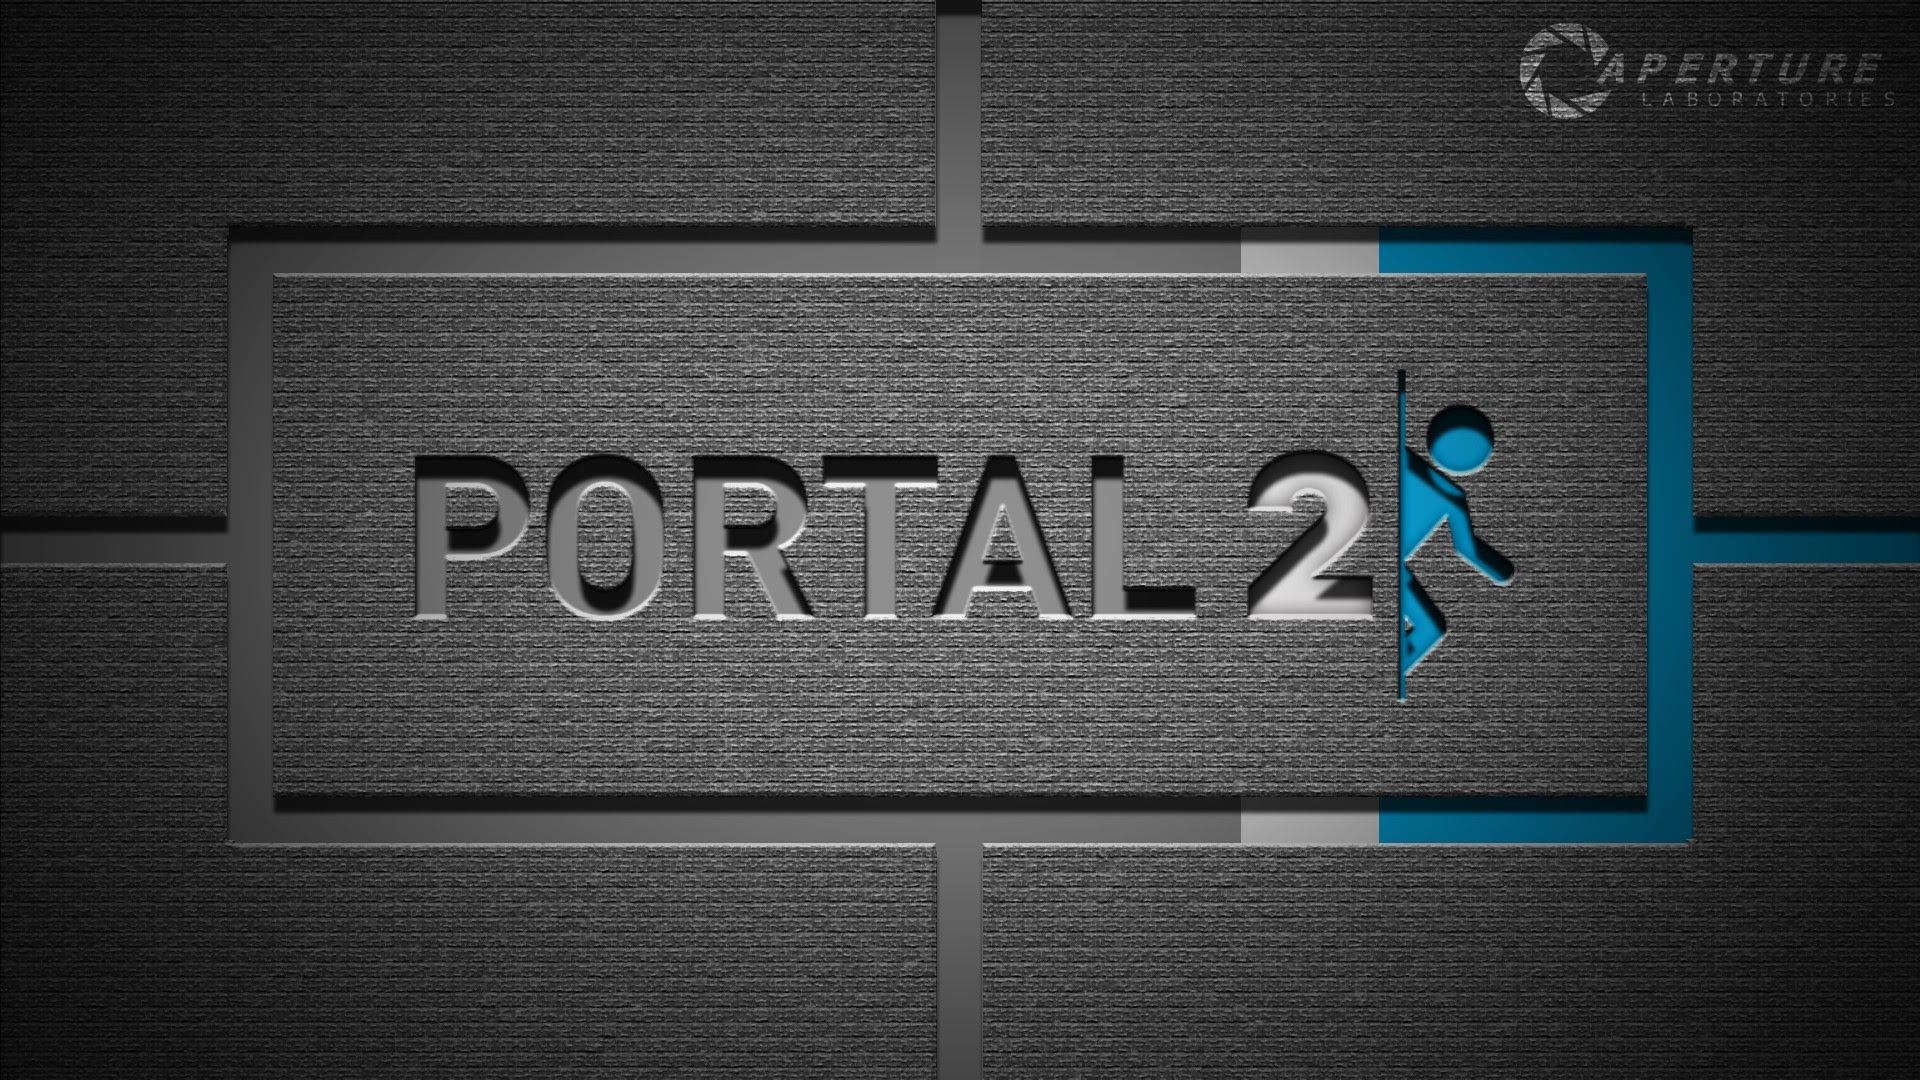 Portal 2 Background Wallpaper 1920x1080 67741